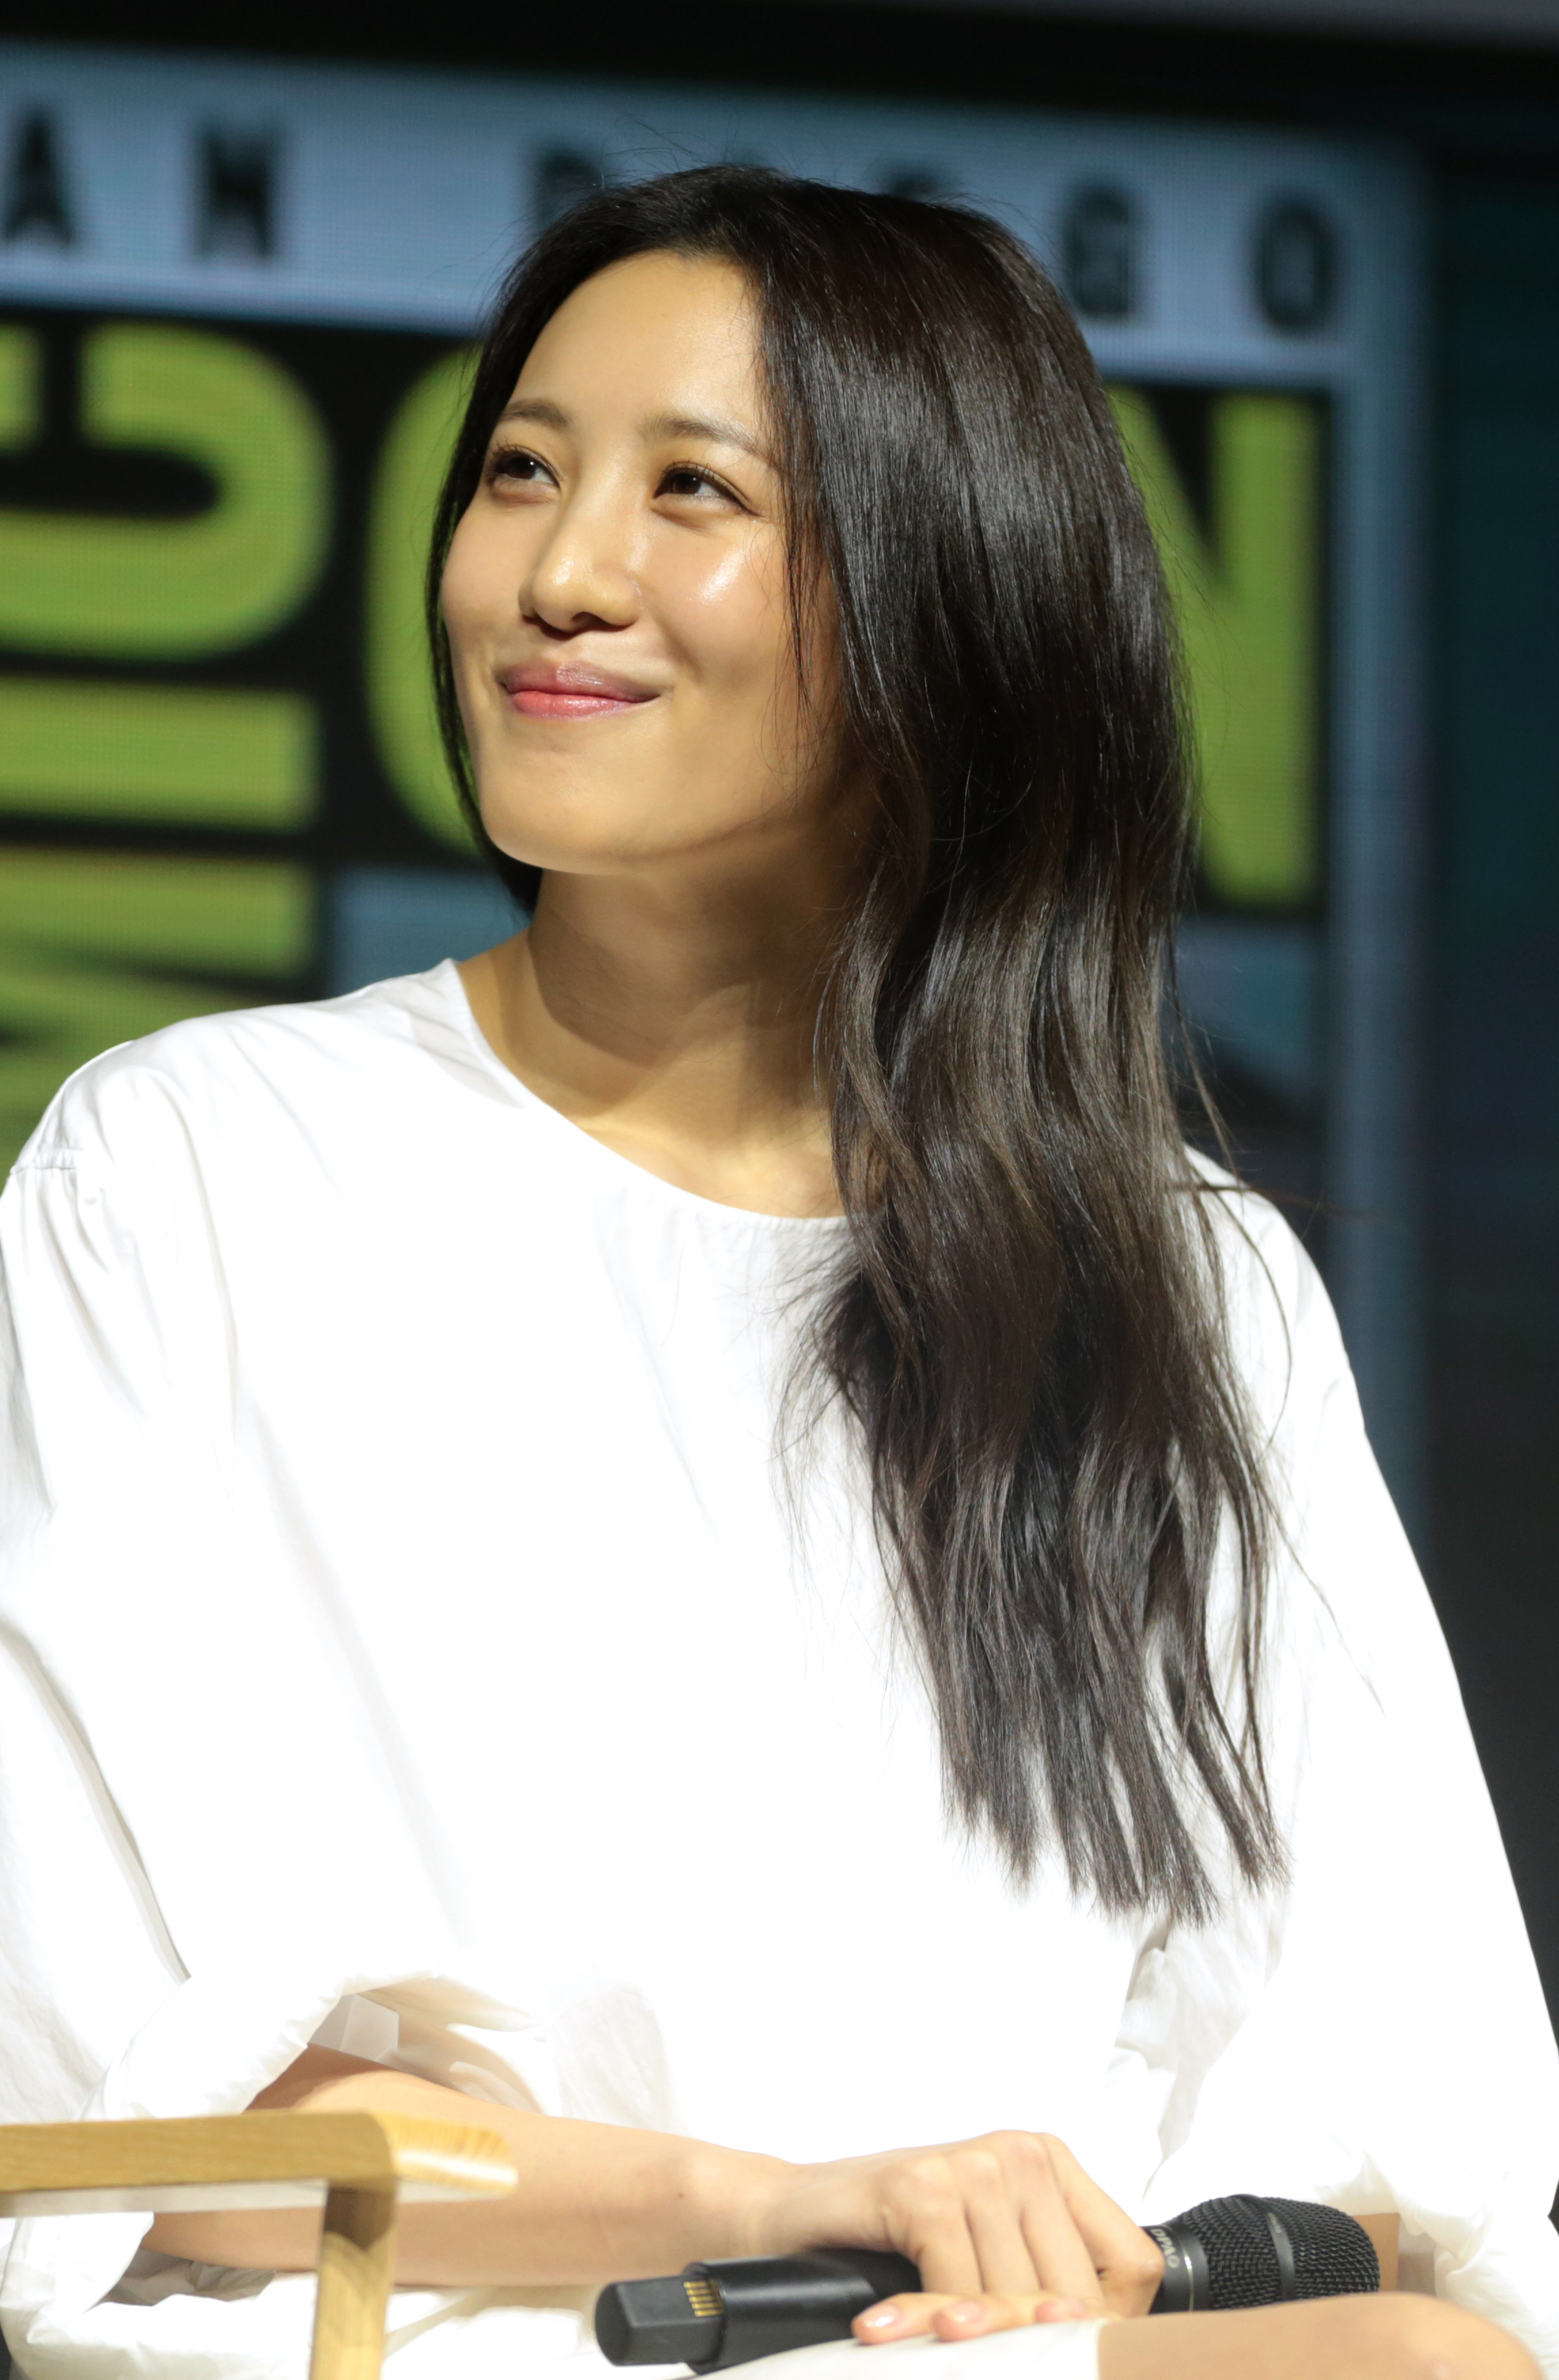 The 33-year old daughter of father (?) and mother(?) Claudia Kim in 2018 photo. Claudia Kim earned a  million dollar salary - leaving the net worth at 0.4 million in 2018